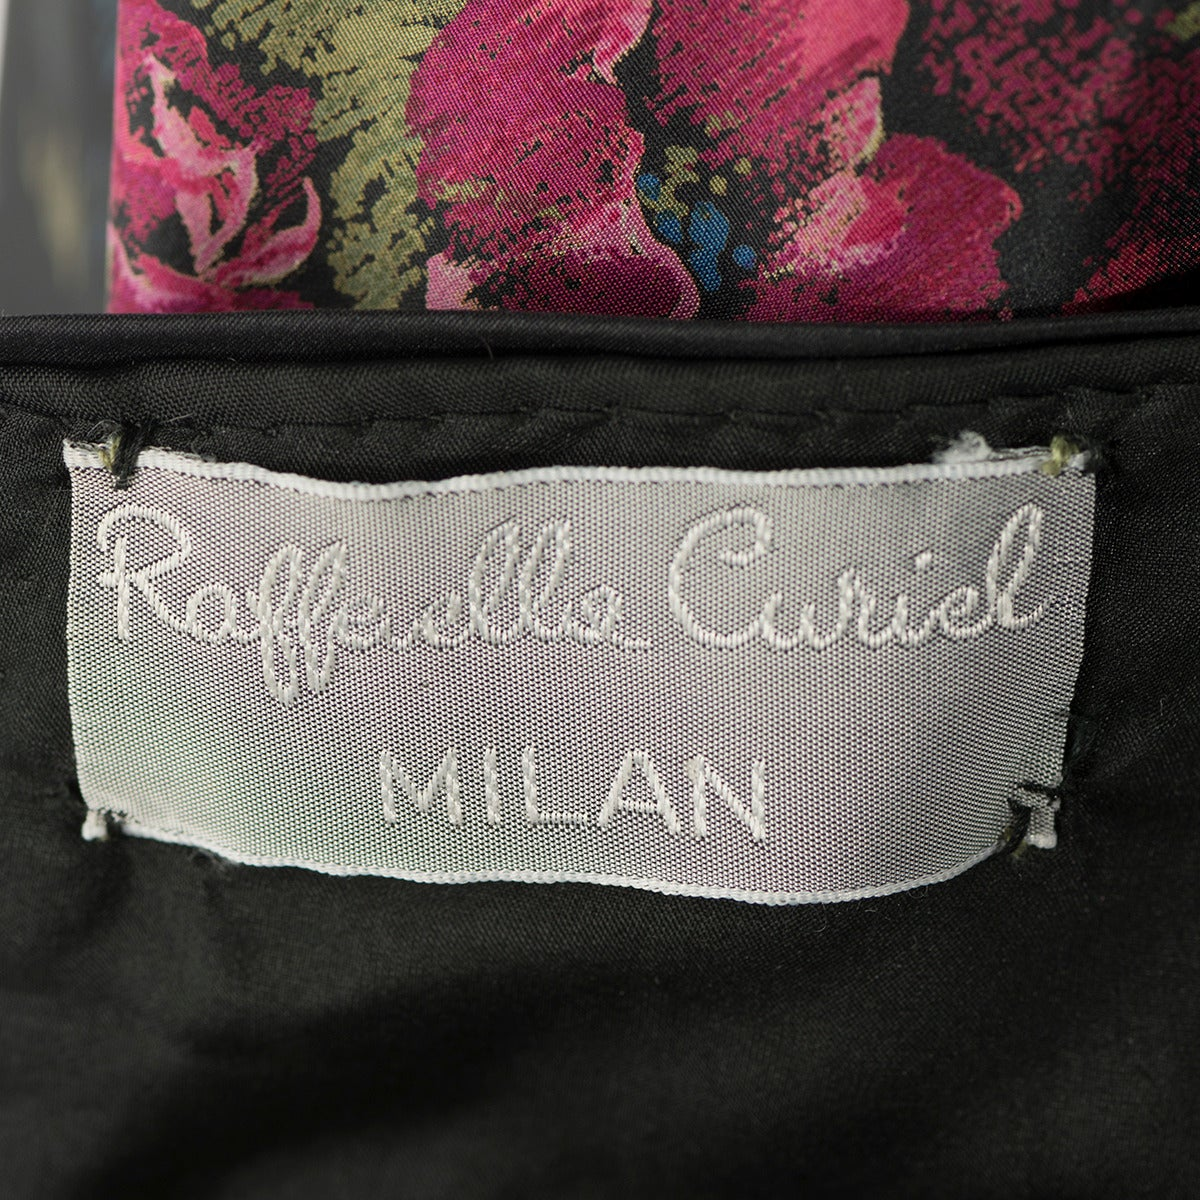 1970s Raffaella Curiel Milano Evening Gown In Excellent Condition For Sale In Gazzaniga (BG), IT